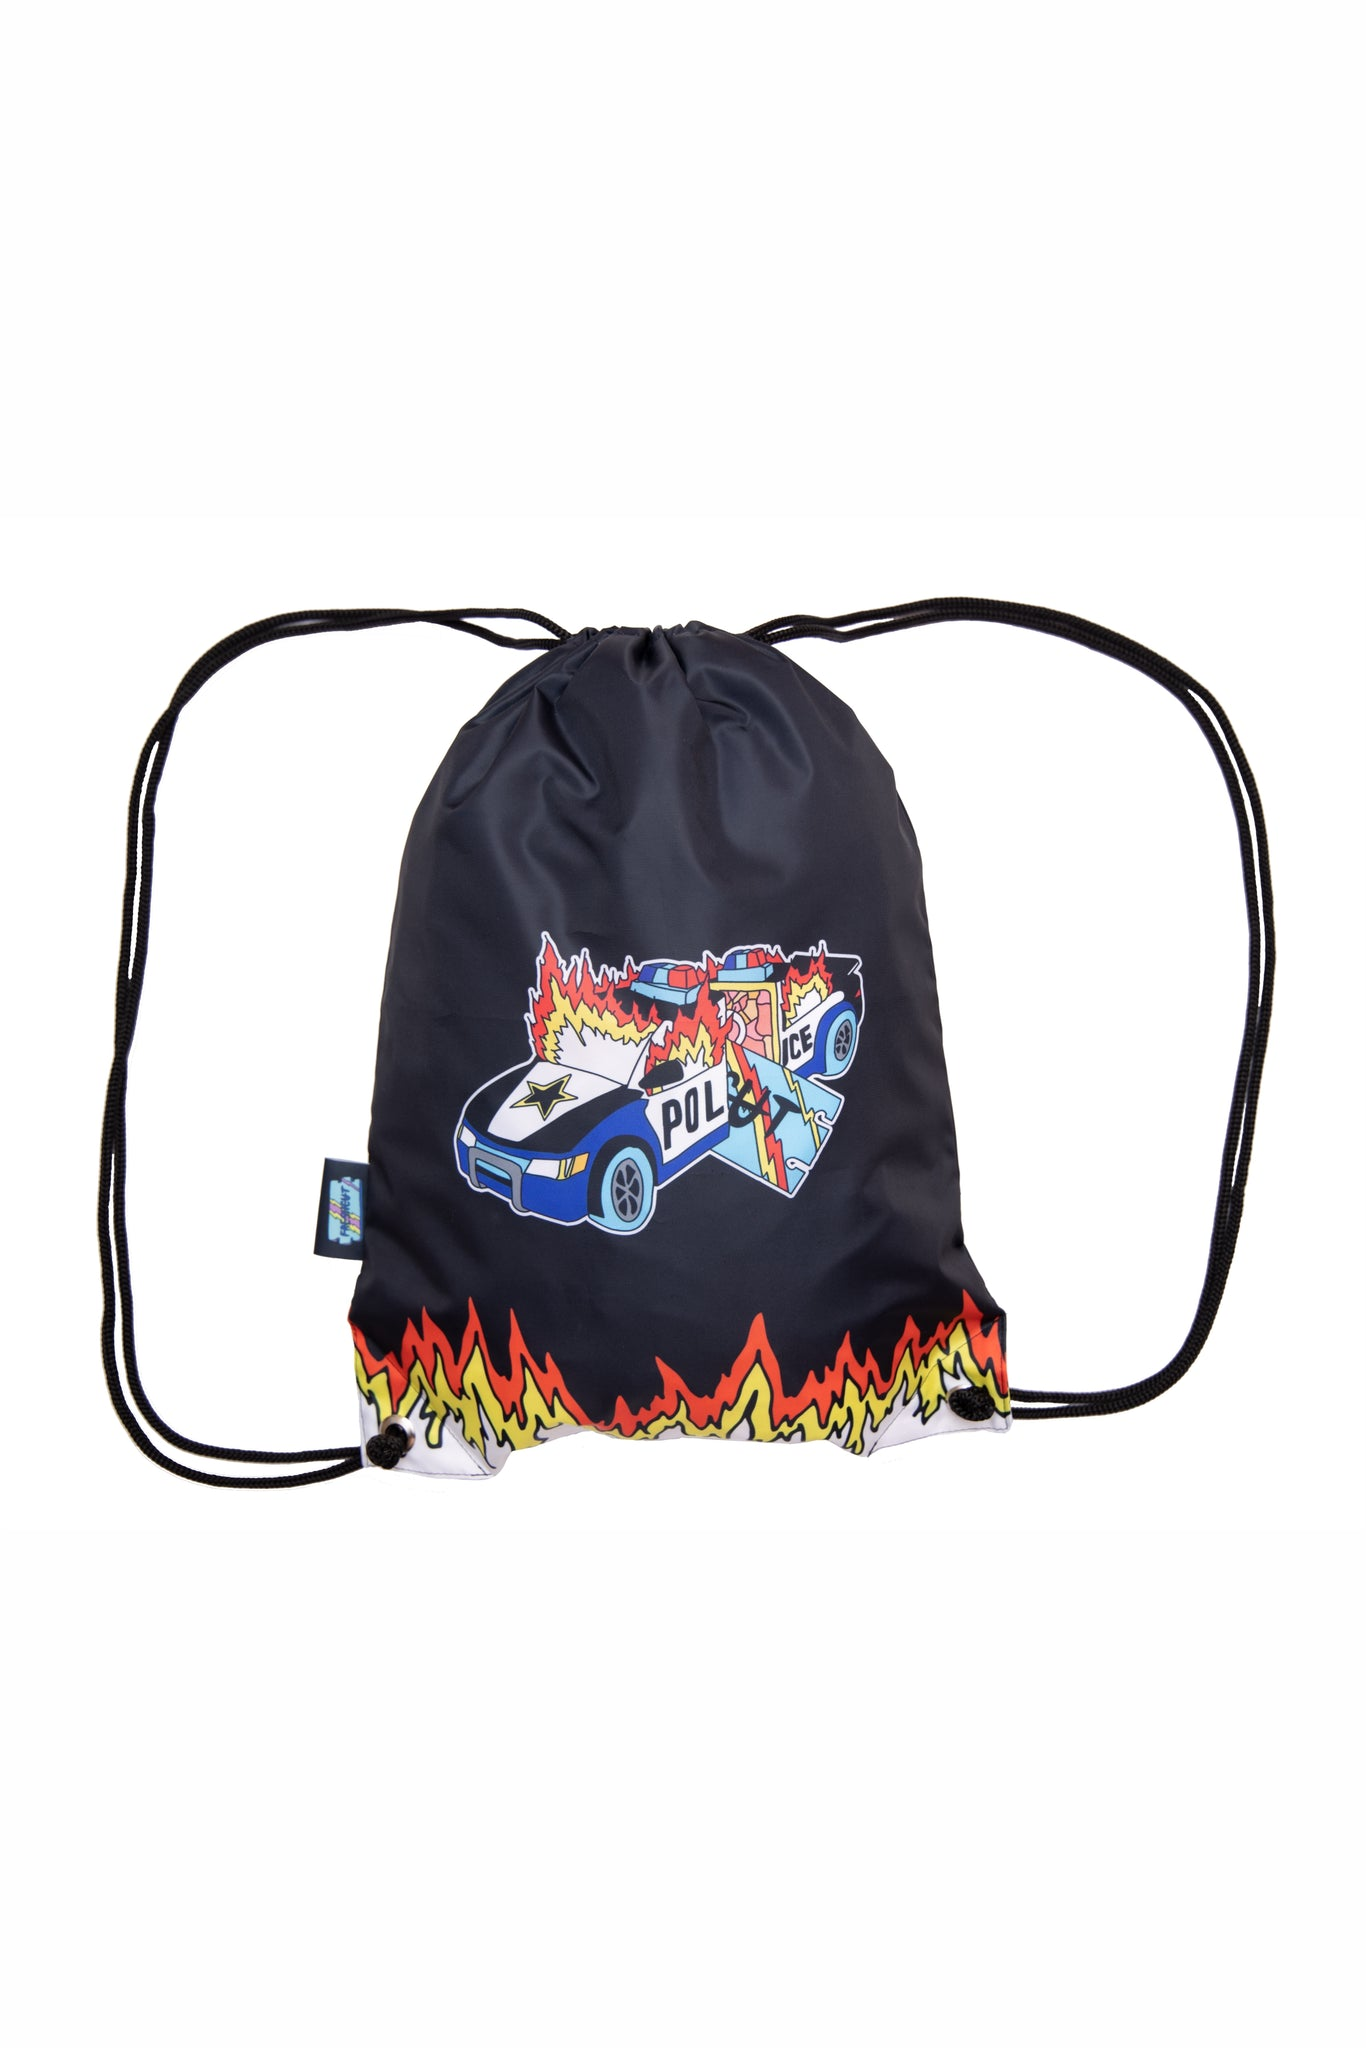 FRESH CUT police Backpacks